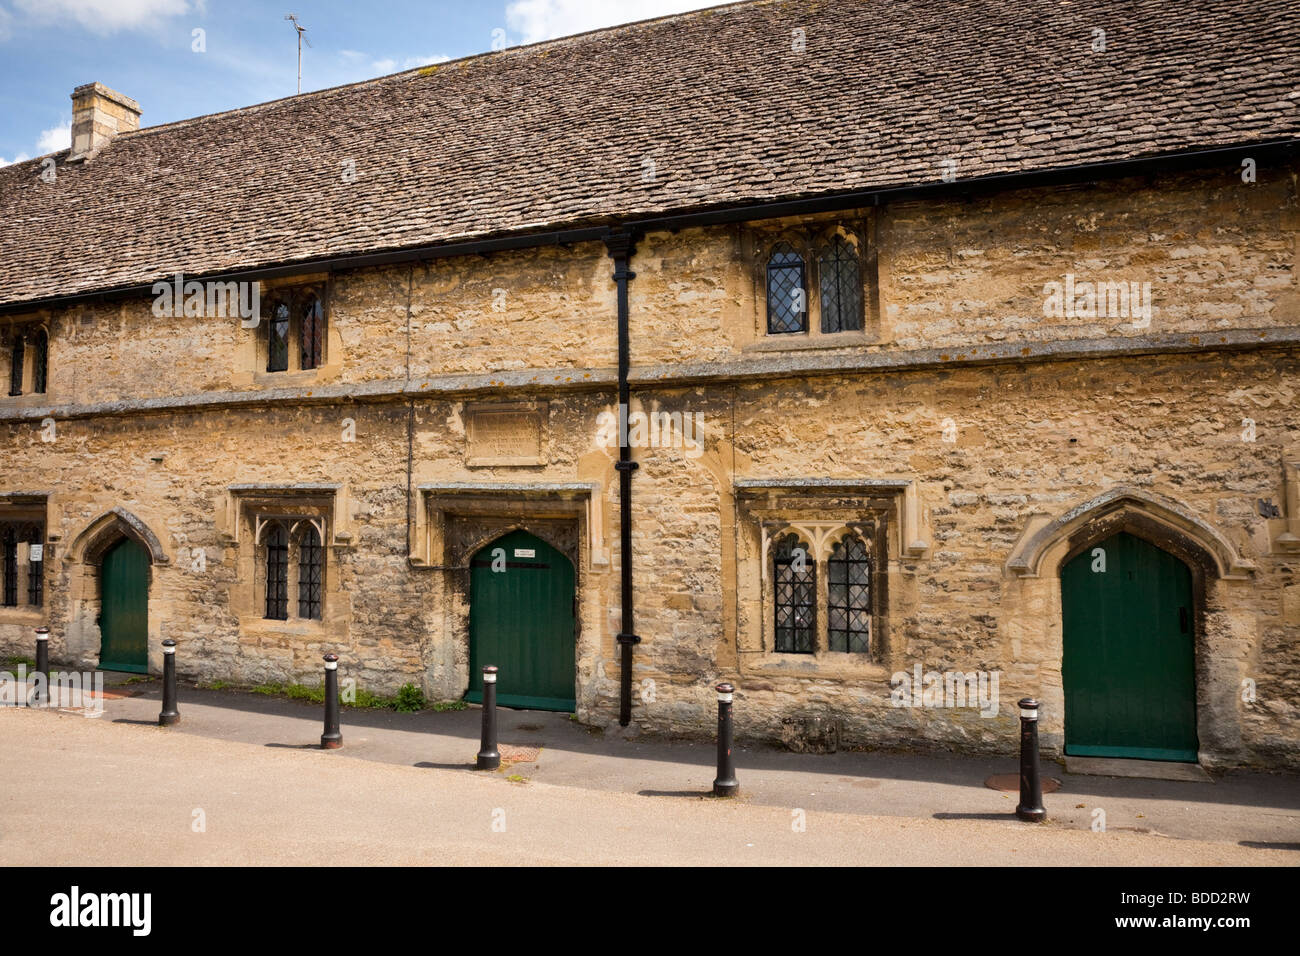 15th Century Almshouses in the Cotswolds town of Burford, Oxfordshire, England, UK - Stock Image